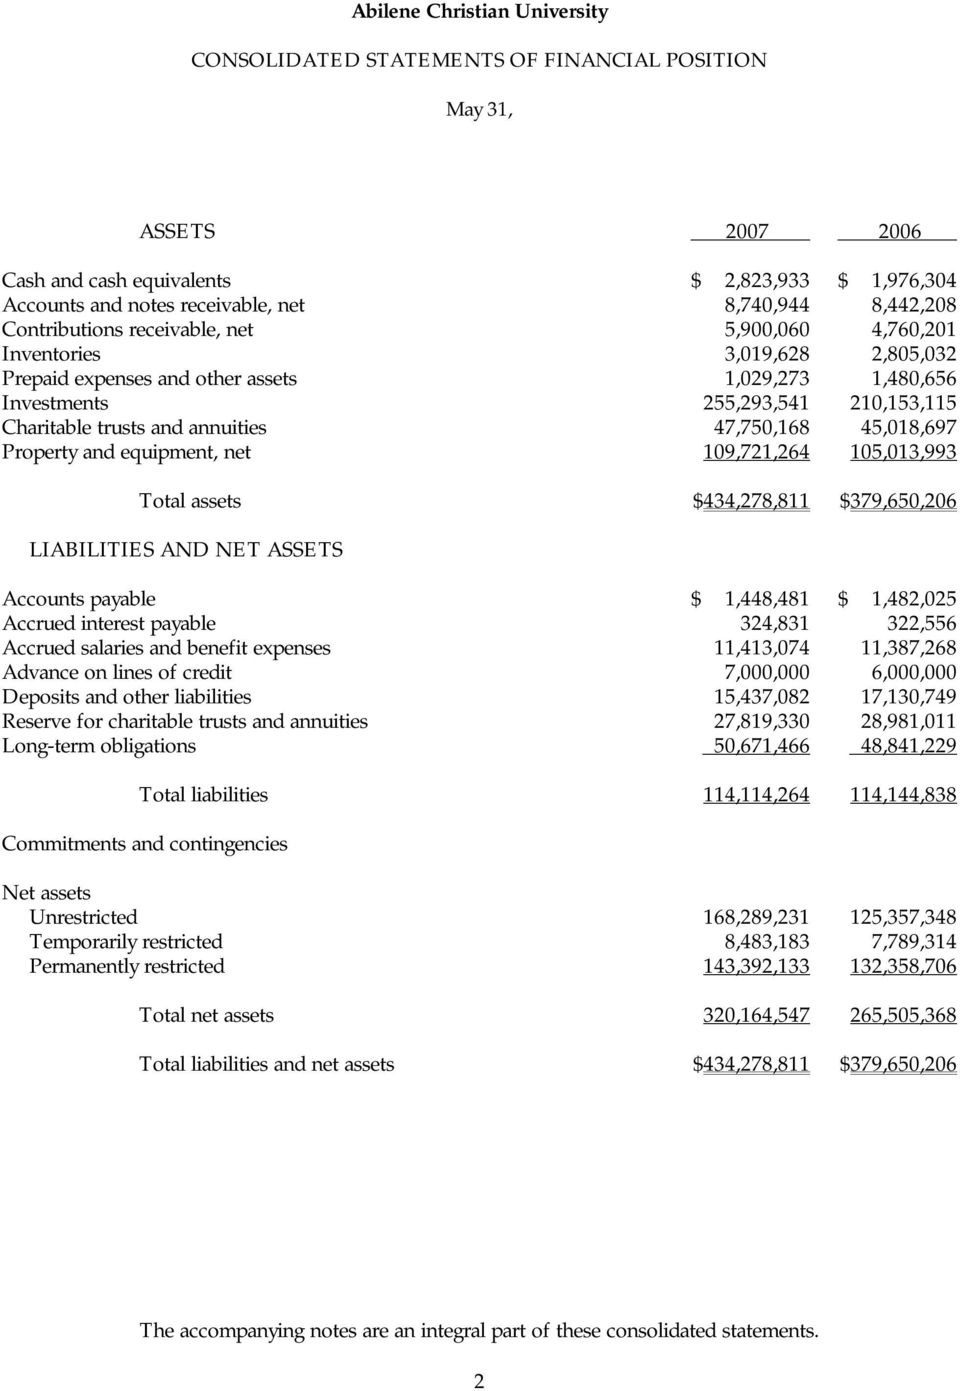 Property and equipment, net 109,721,264 105,013,993 Total assets $434,278,811 $379,650,206 LIABILITIES AND NET ASSETS Accounts payable $ 1,448,481 $ 1,482,025 Accrued interest payable 324,831 322,556